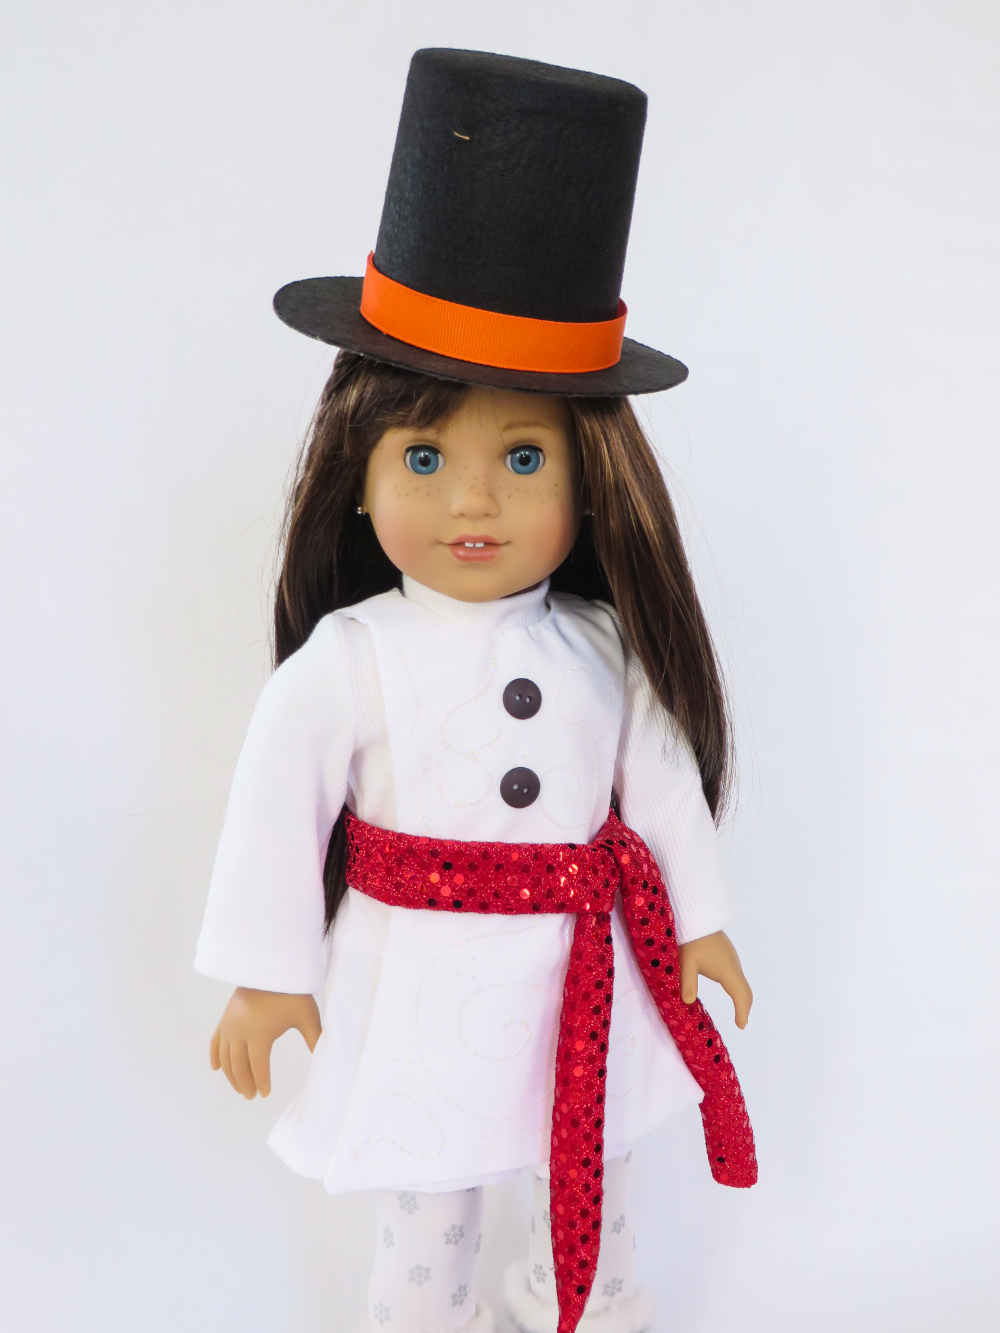 Sew a Halloween Costume for Your American Girl Doll (With images) - American girl doll, Doll ...